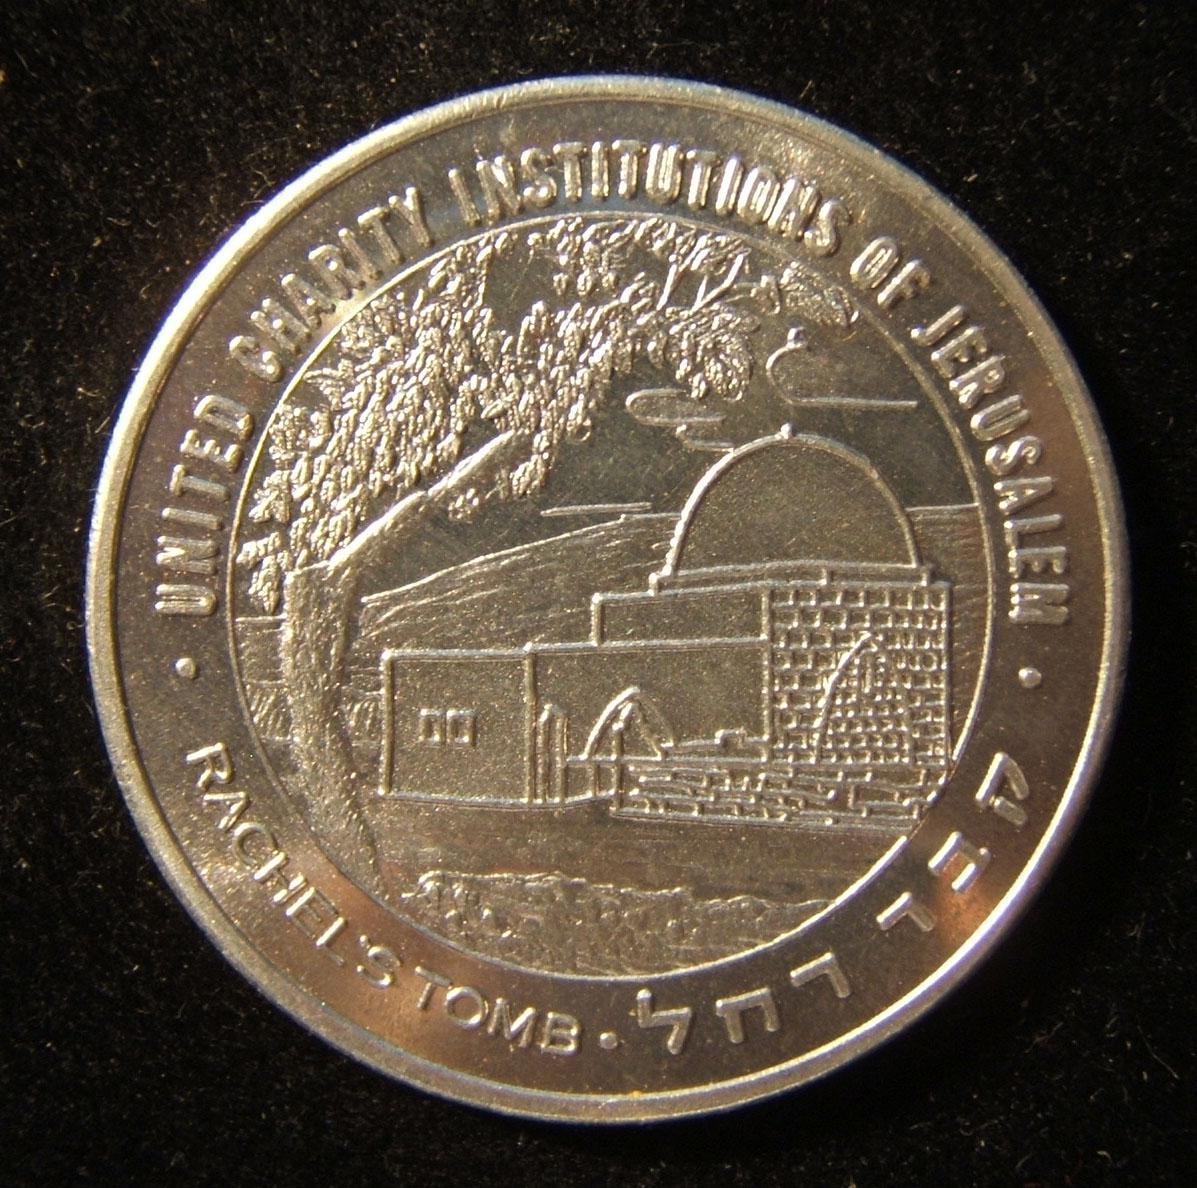 Israel/US: United Charity Institutions of Jerusalem aluminum token in Hebrew & English, with image of Rachel's Tomb on obverse and Western Wall on reverse, with quotation